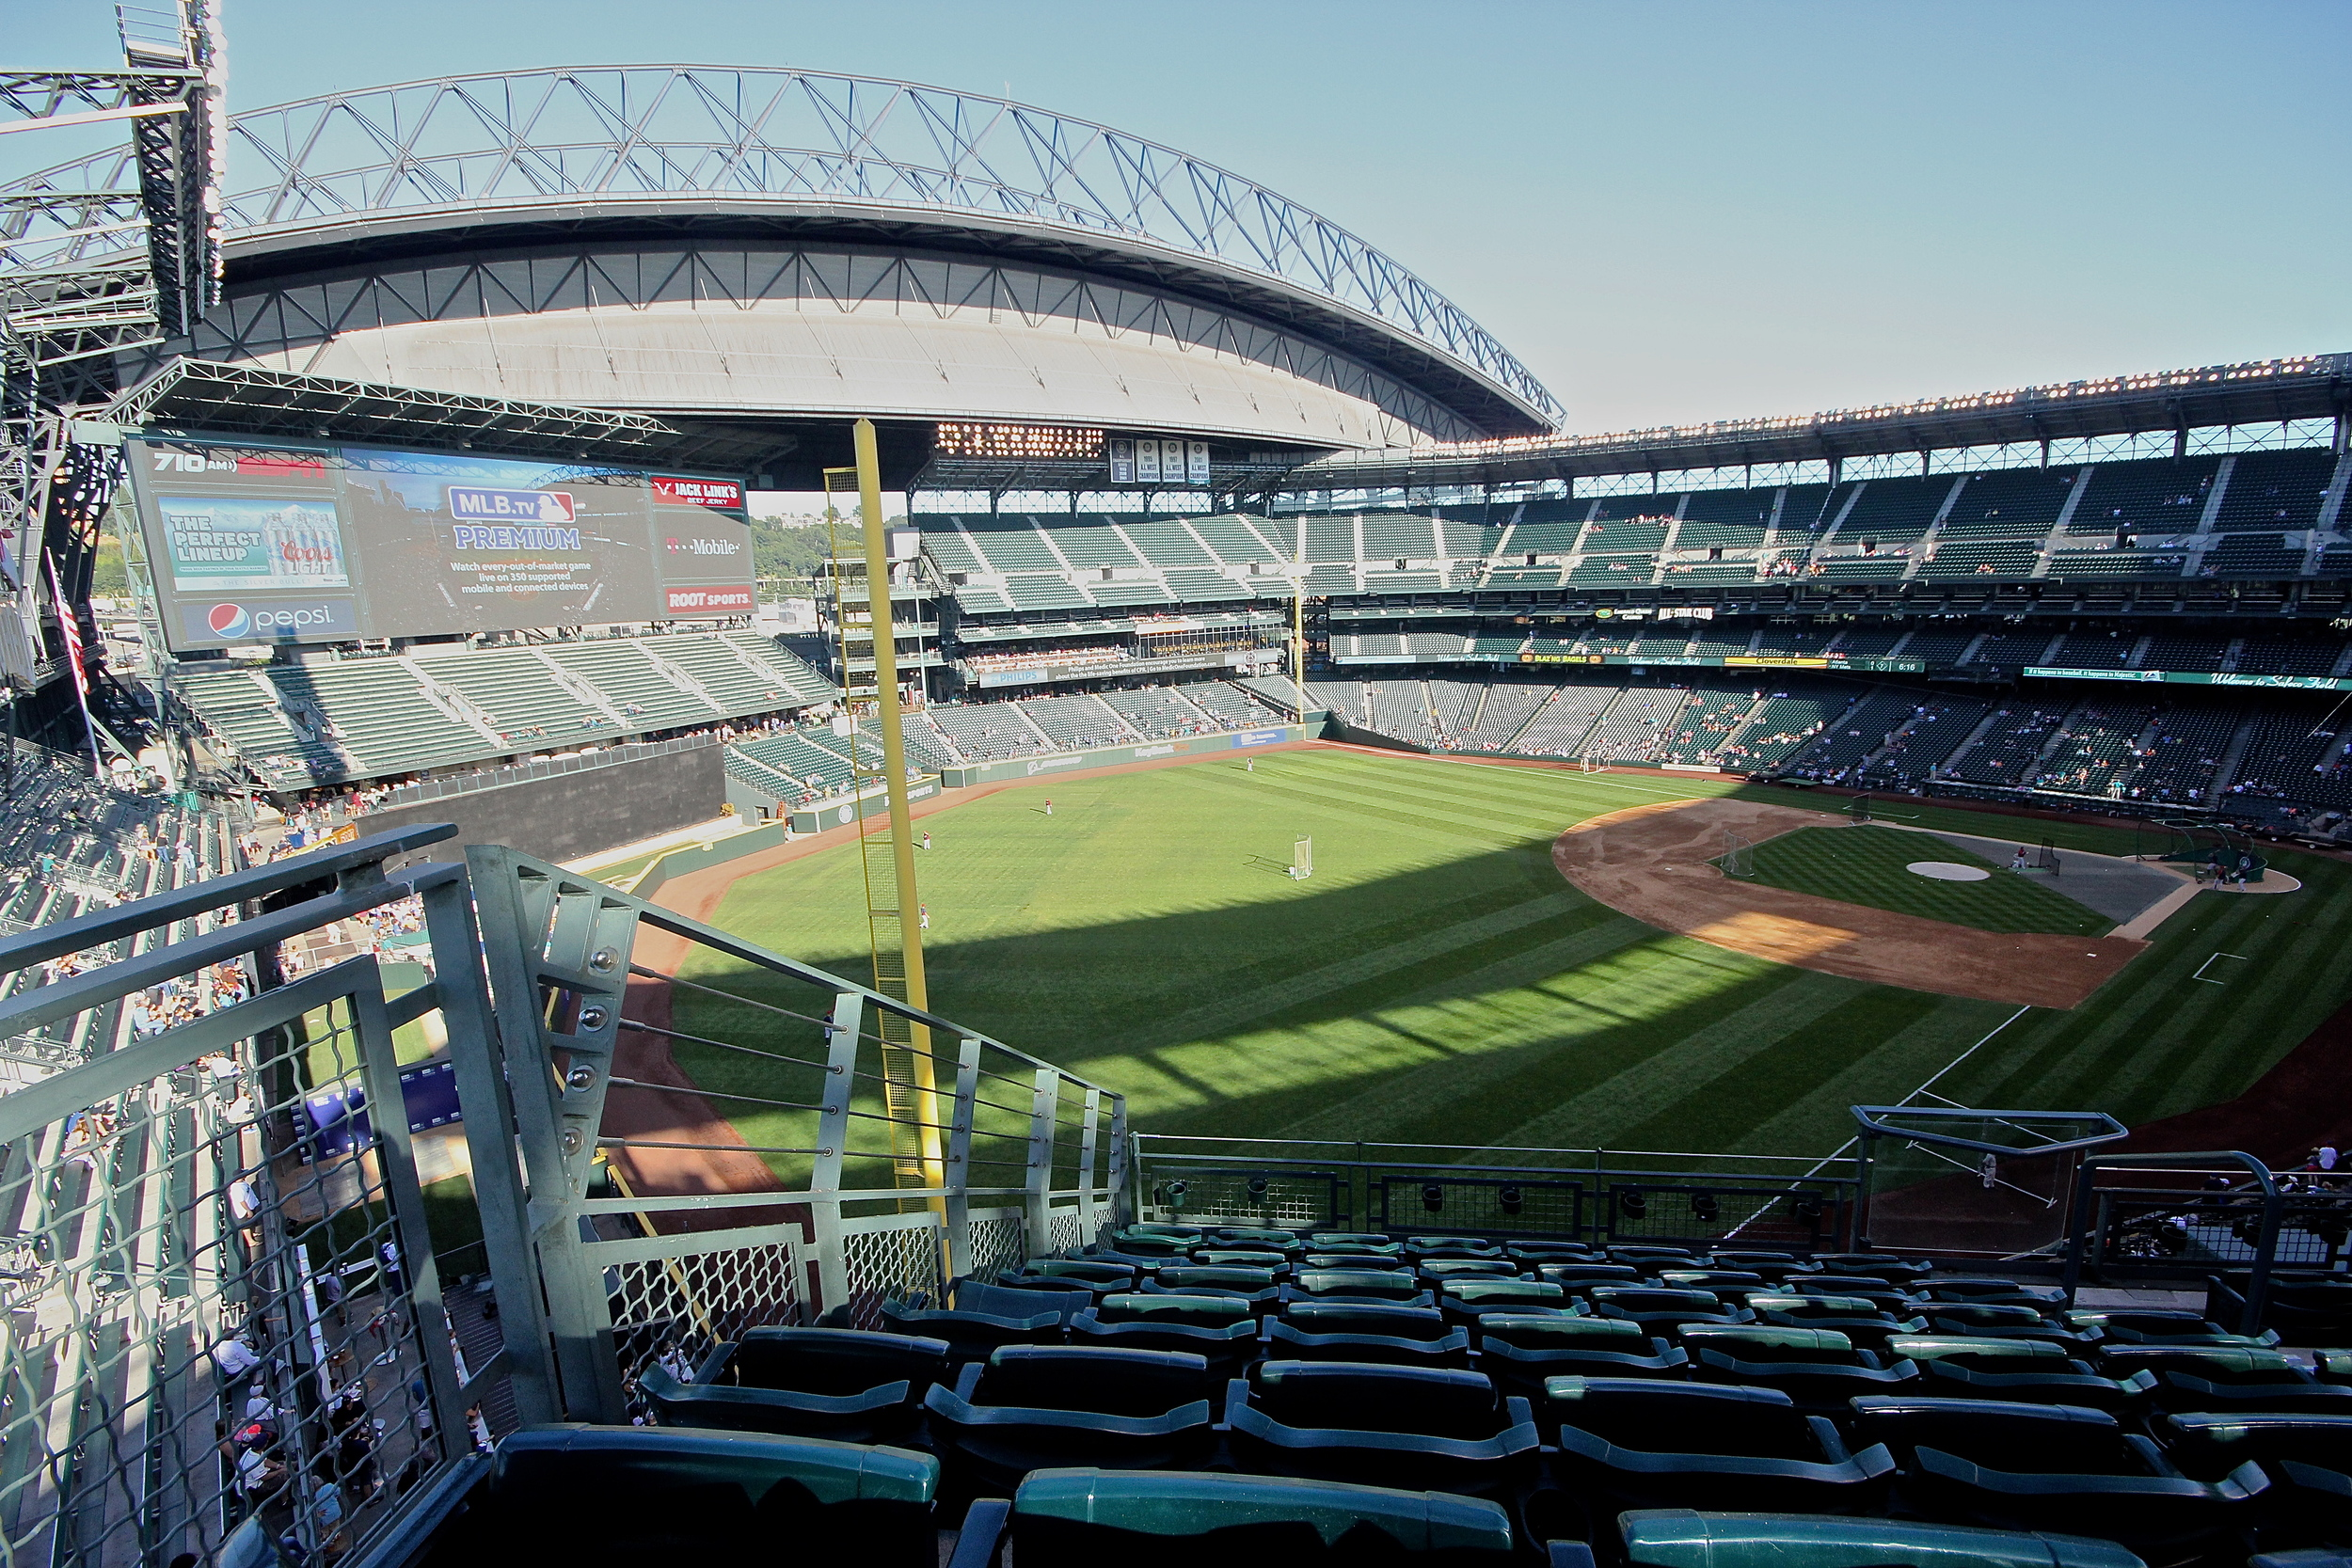 One of the many views available at Safeco